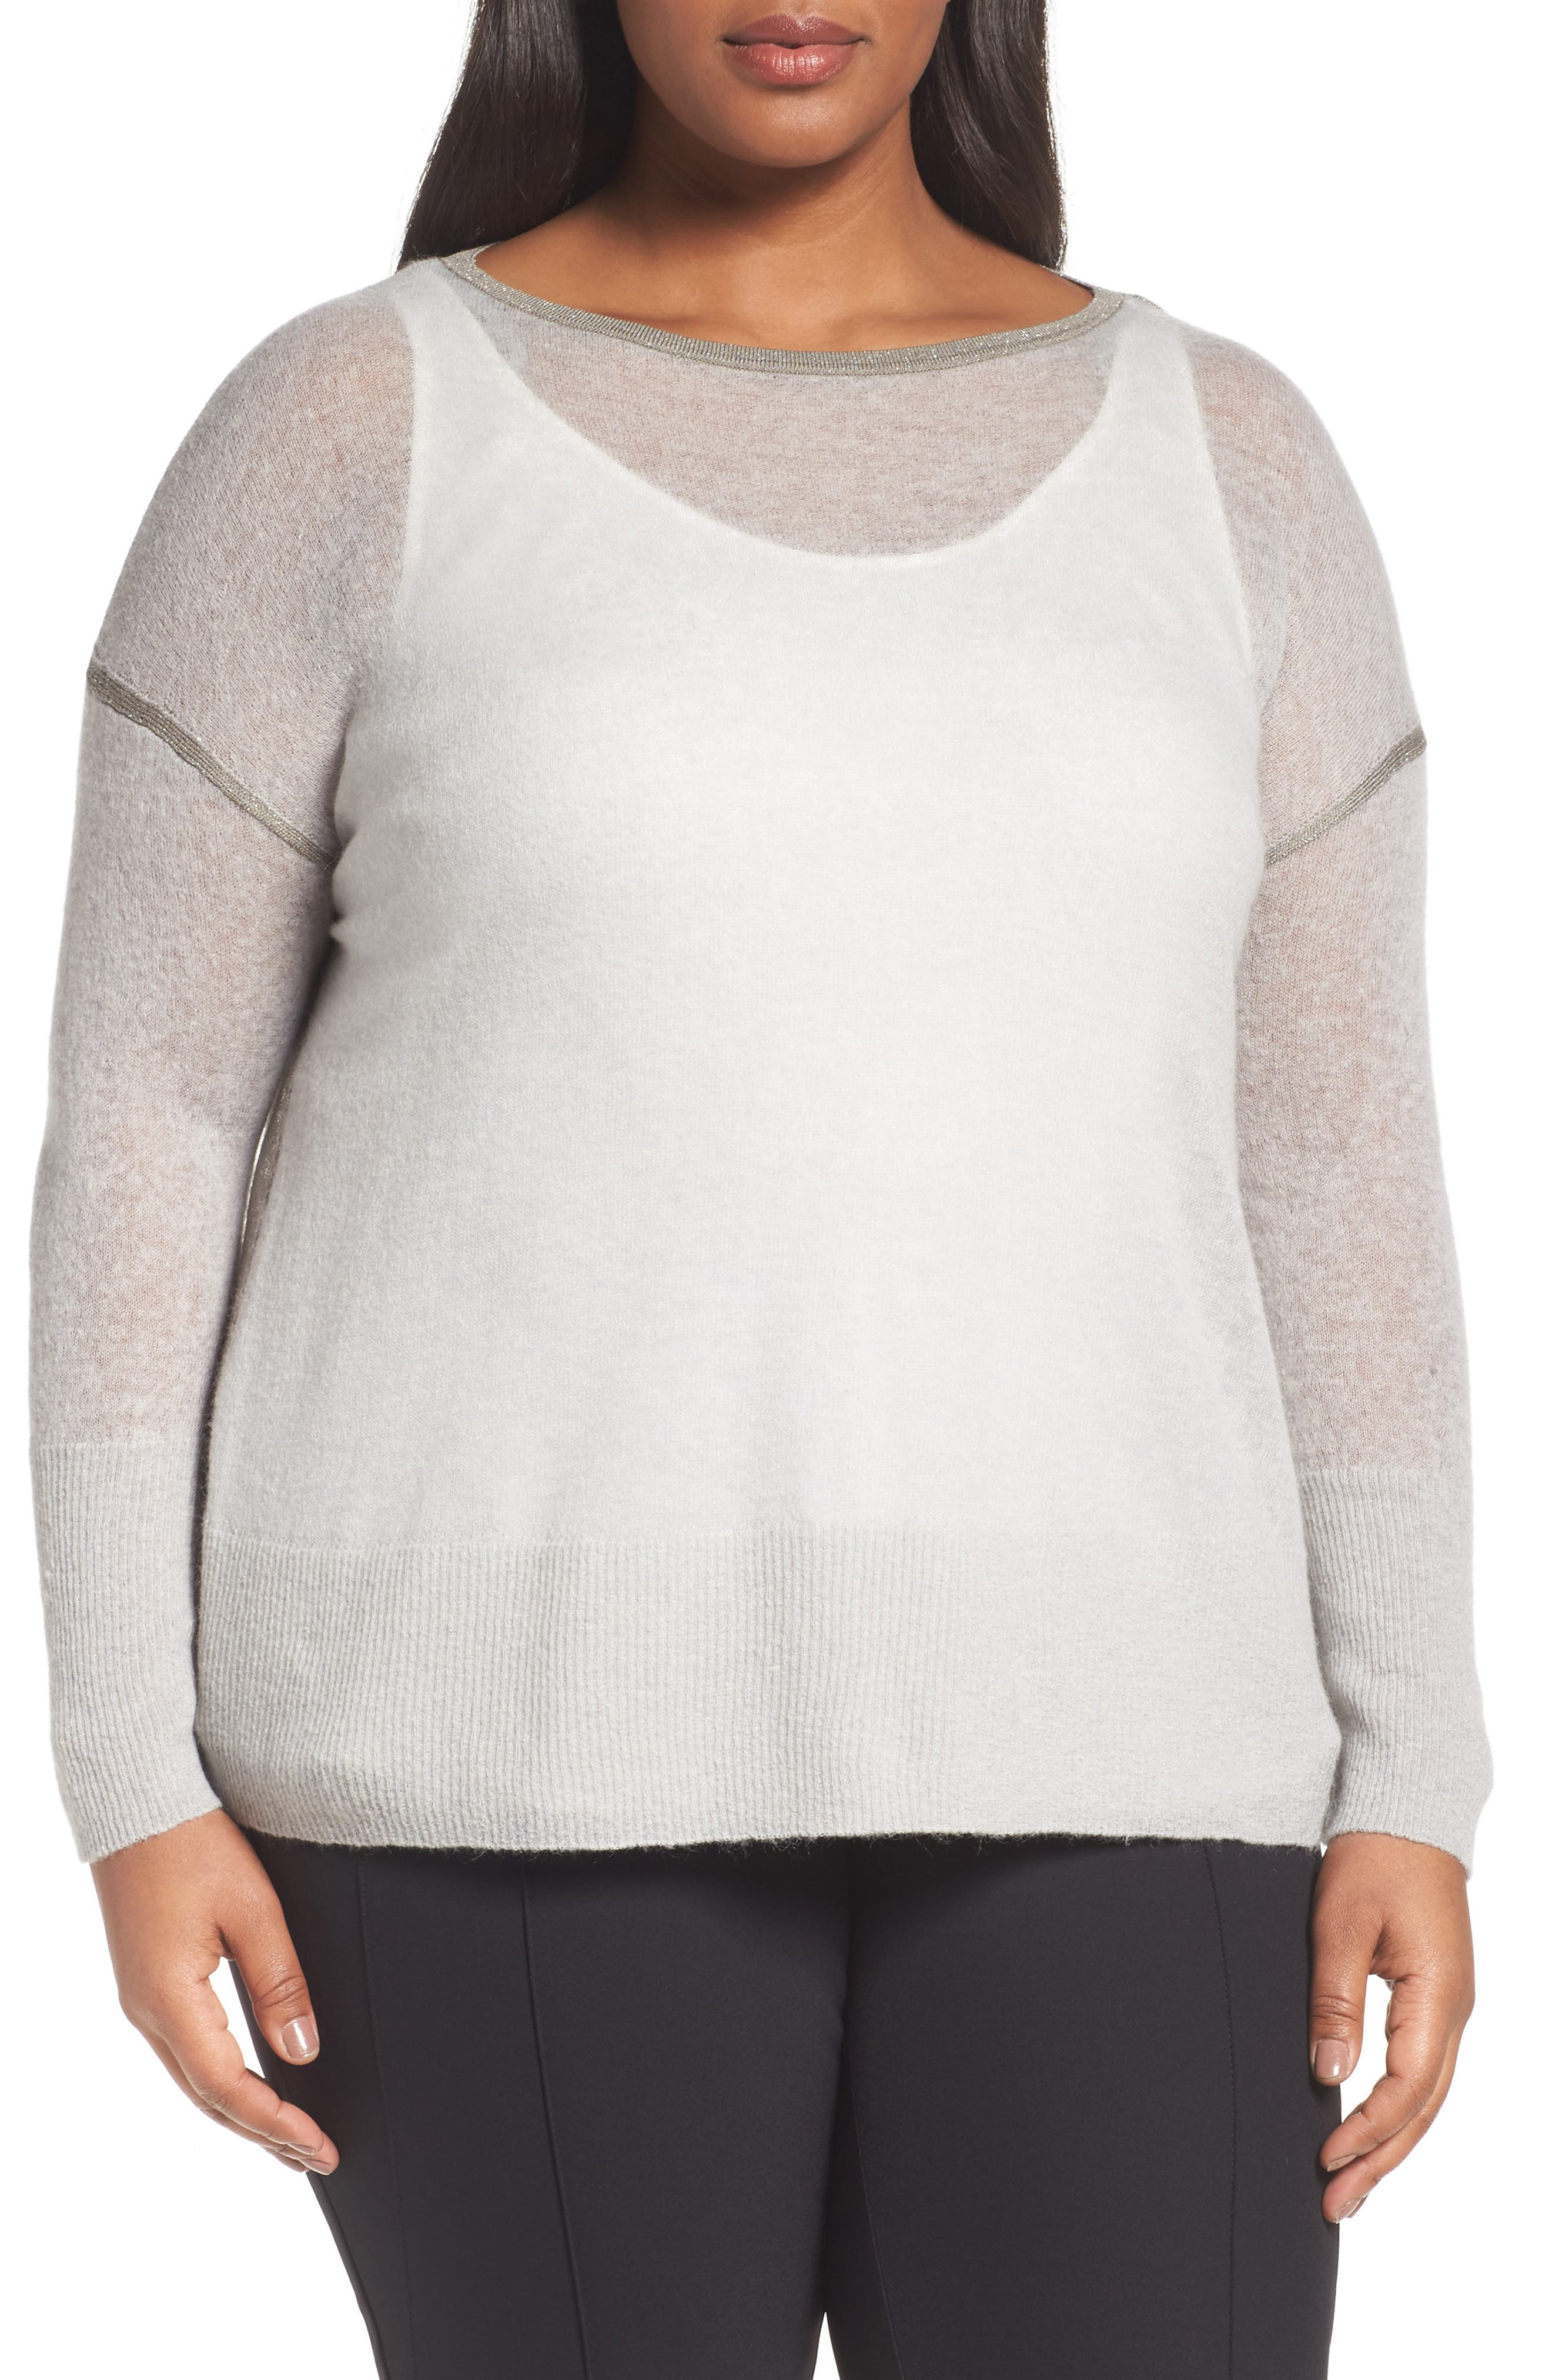 Main Image - Lafayette 148 New York Shimmer Trim Sweater with Tank (Plus Size)